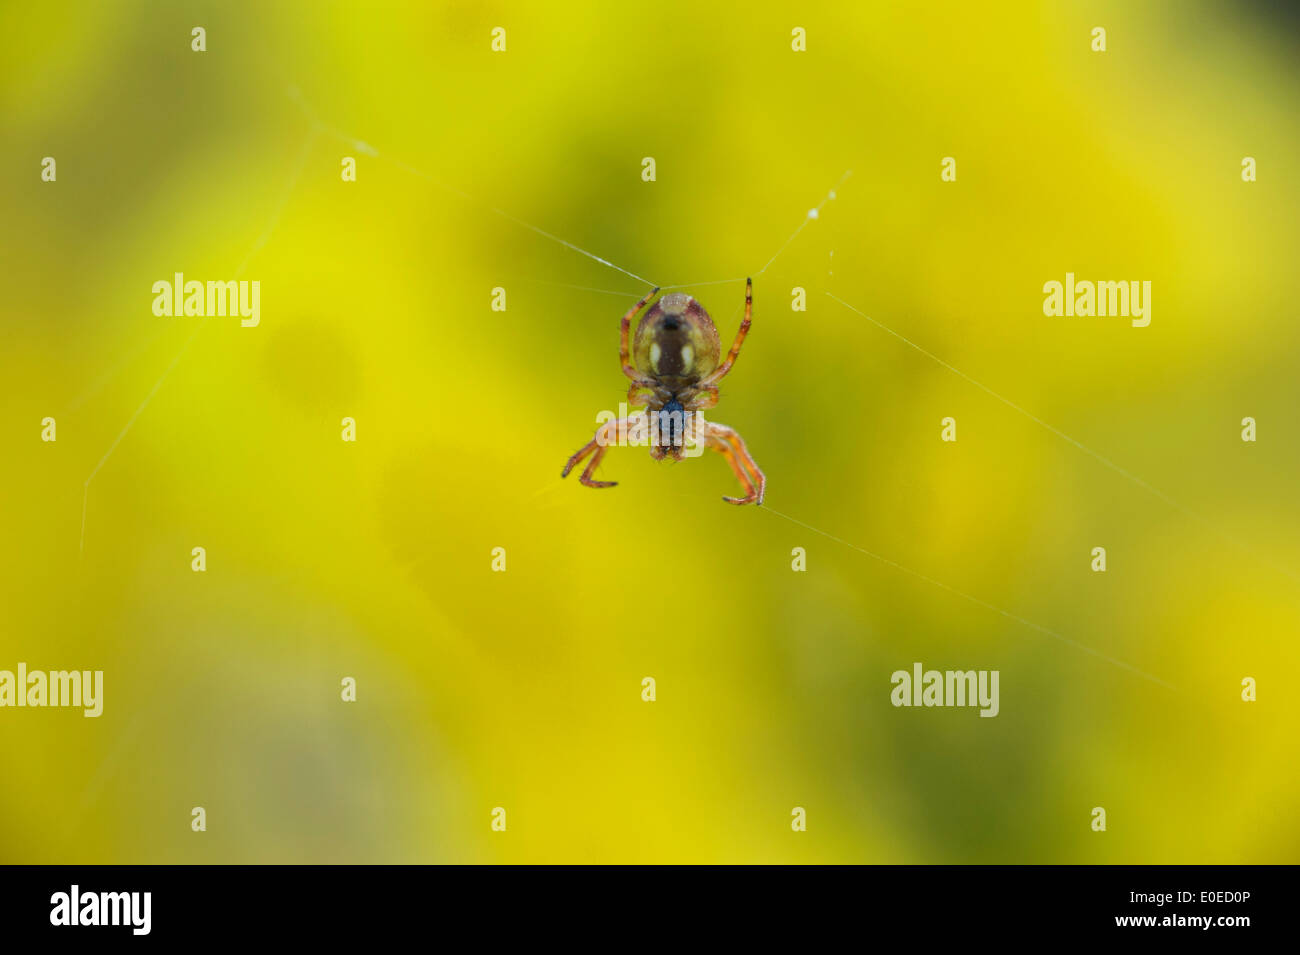 Spider on web set against out of focus yellow wattle flowers - Stock Image